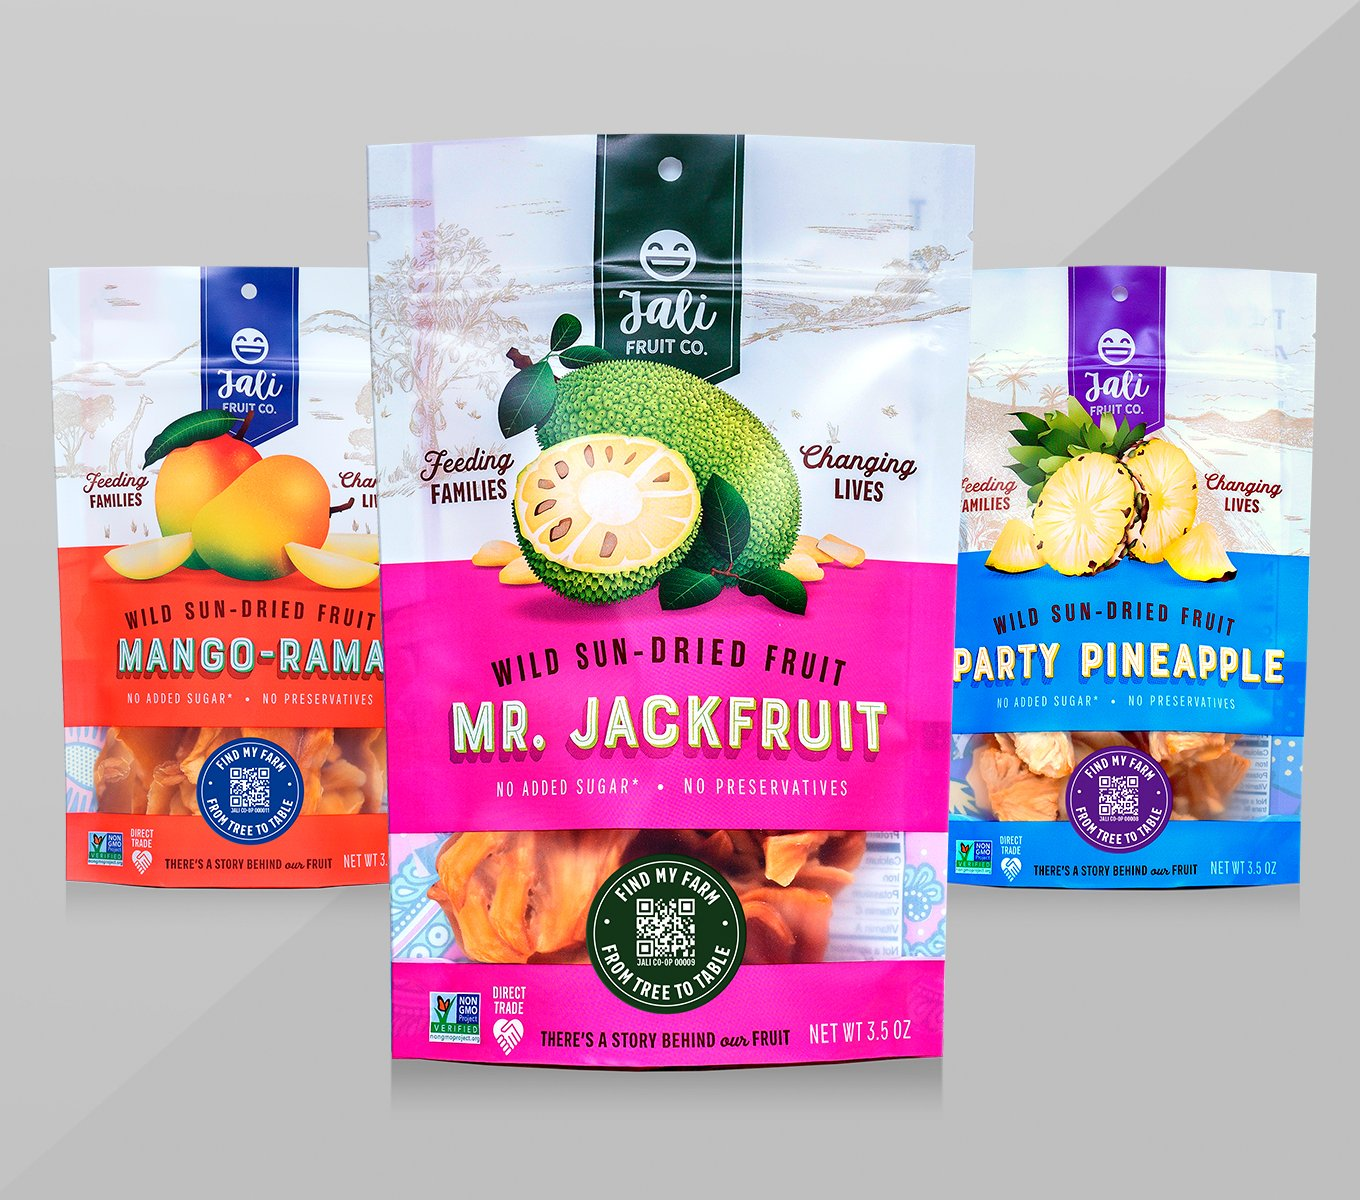 Mr. Jackfruit and Friends Pack The Jali Fruit Co.